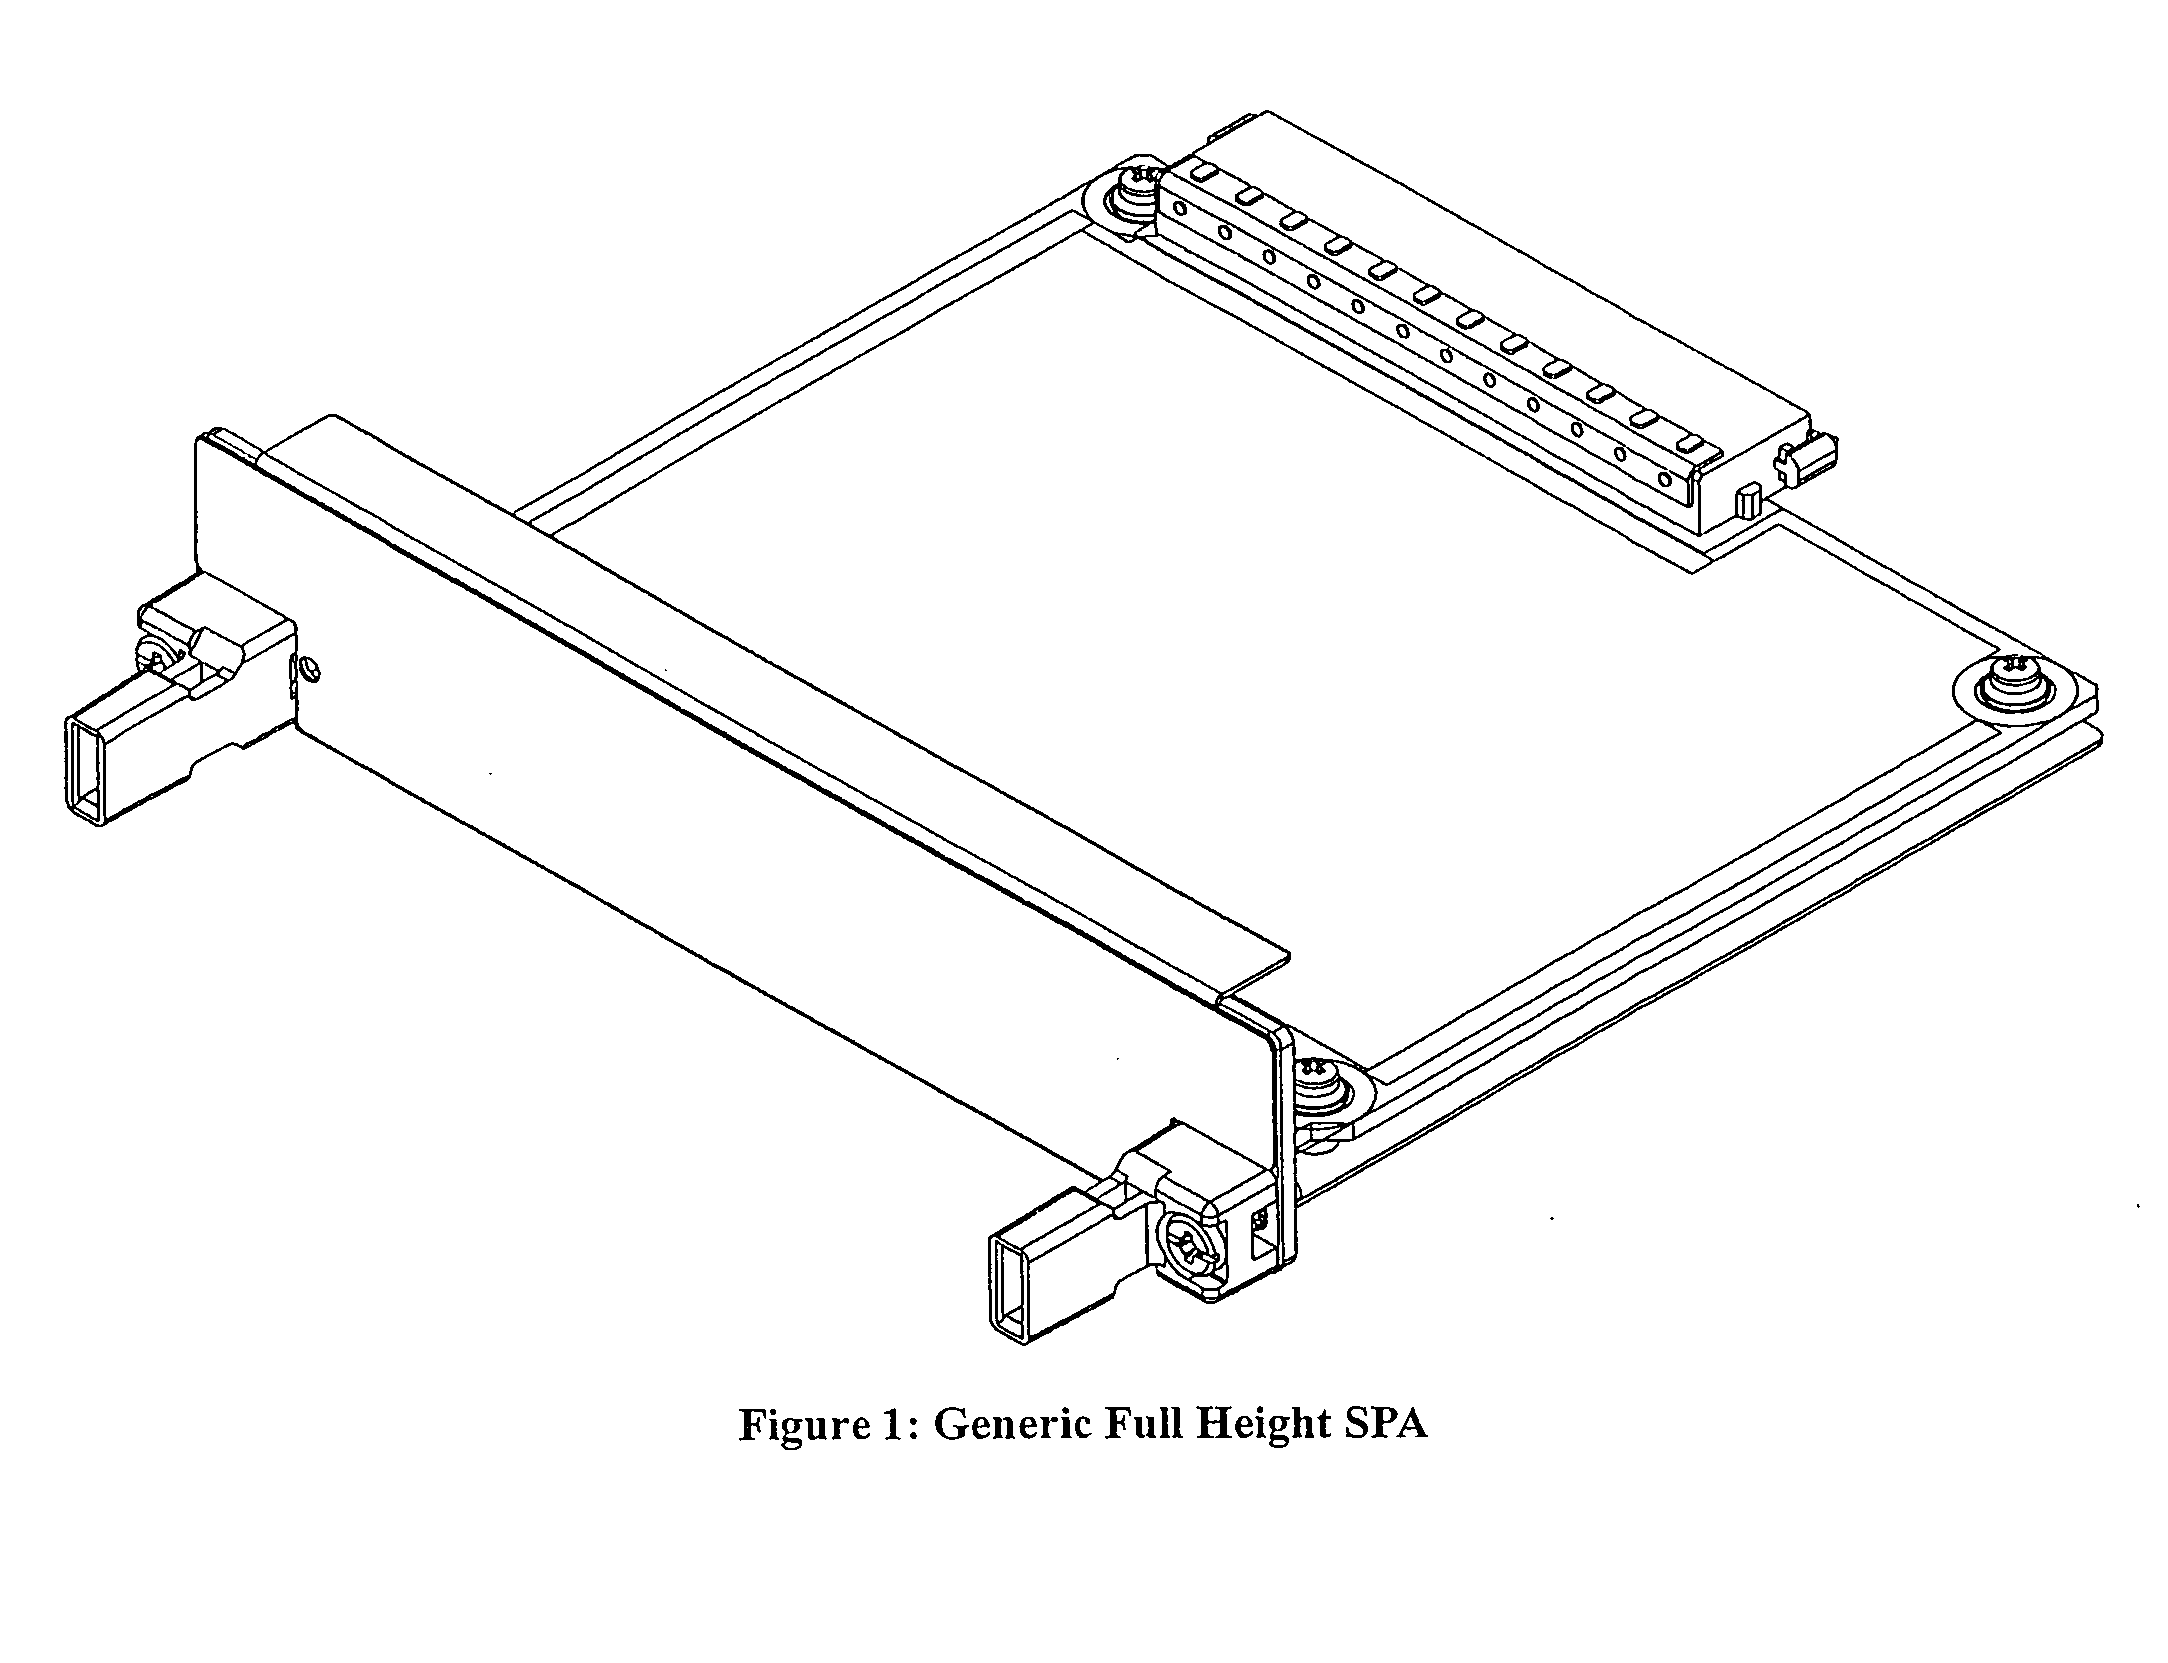 Us20060277346a1 Port Adapter For High Bandwidth Bus Google Patents 825 Likewise Dcc Track Wiring Diagrams On Model Trains Figure 20061207 P00003